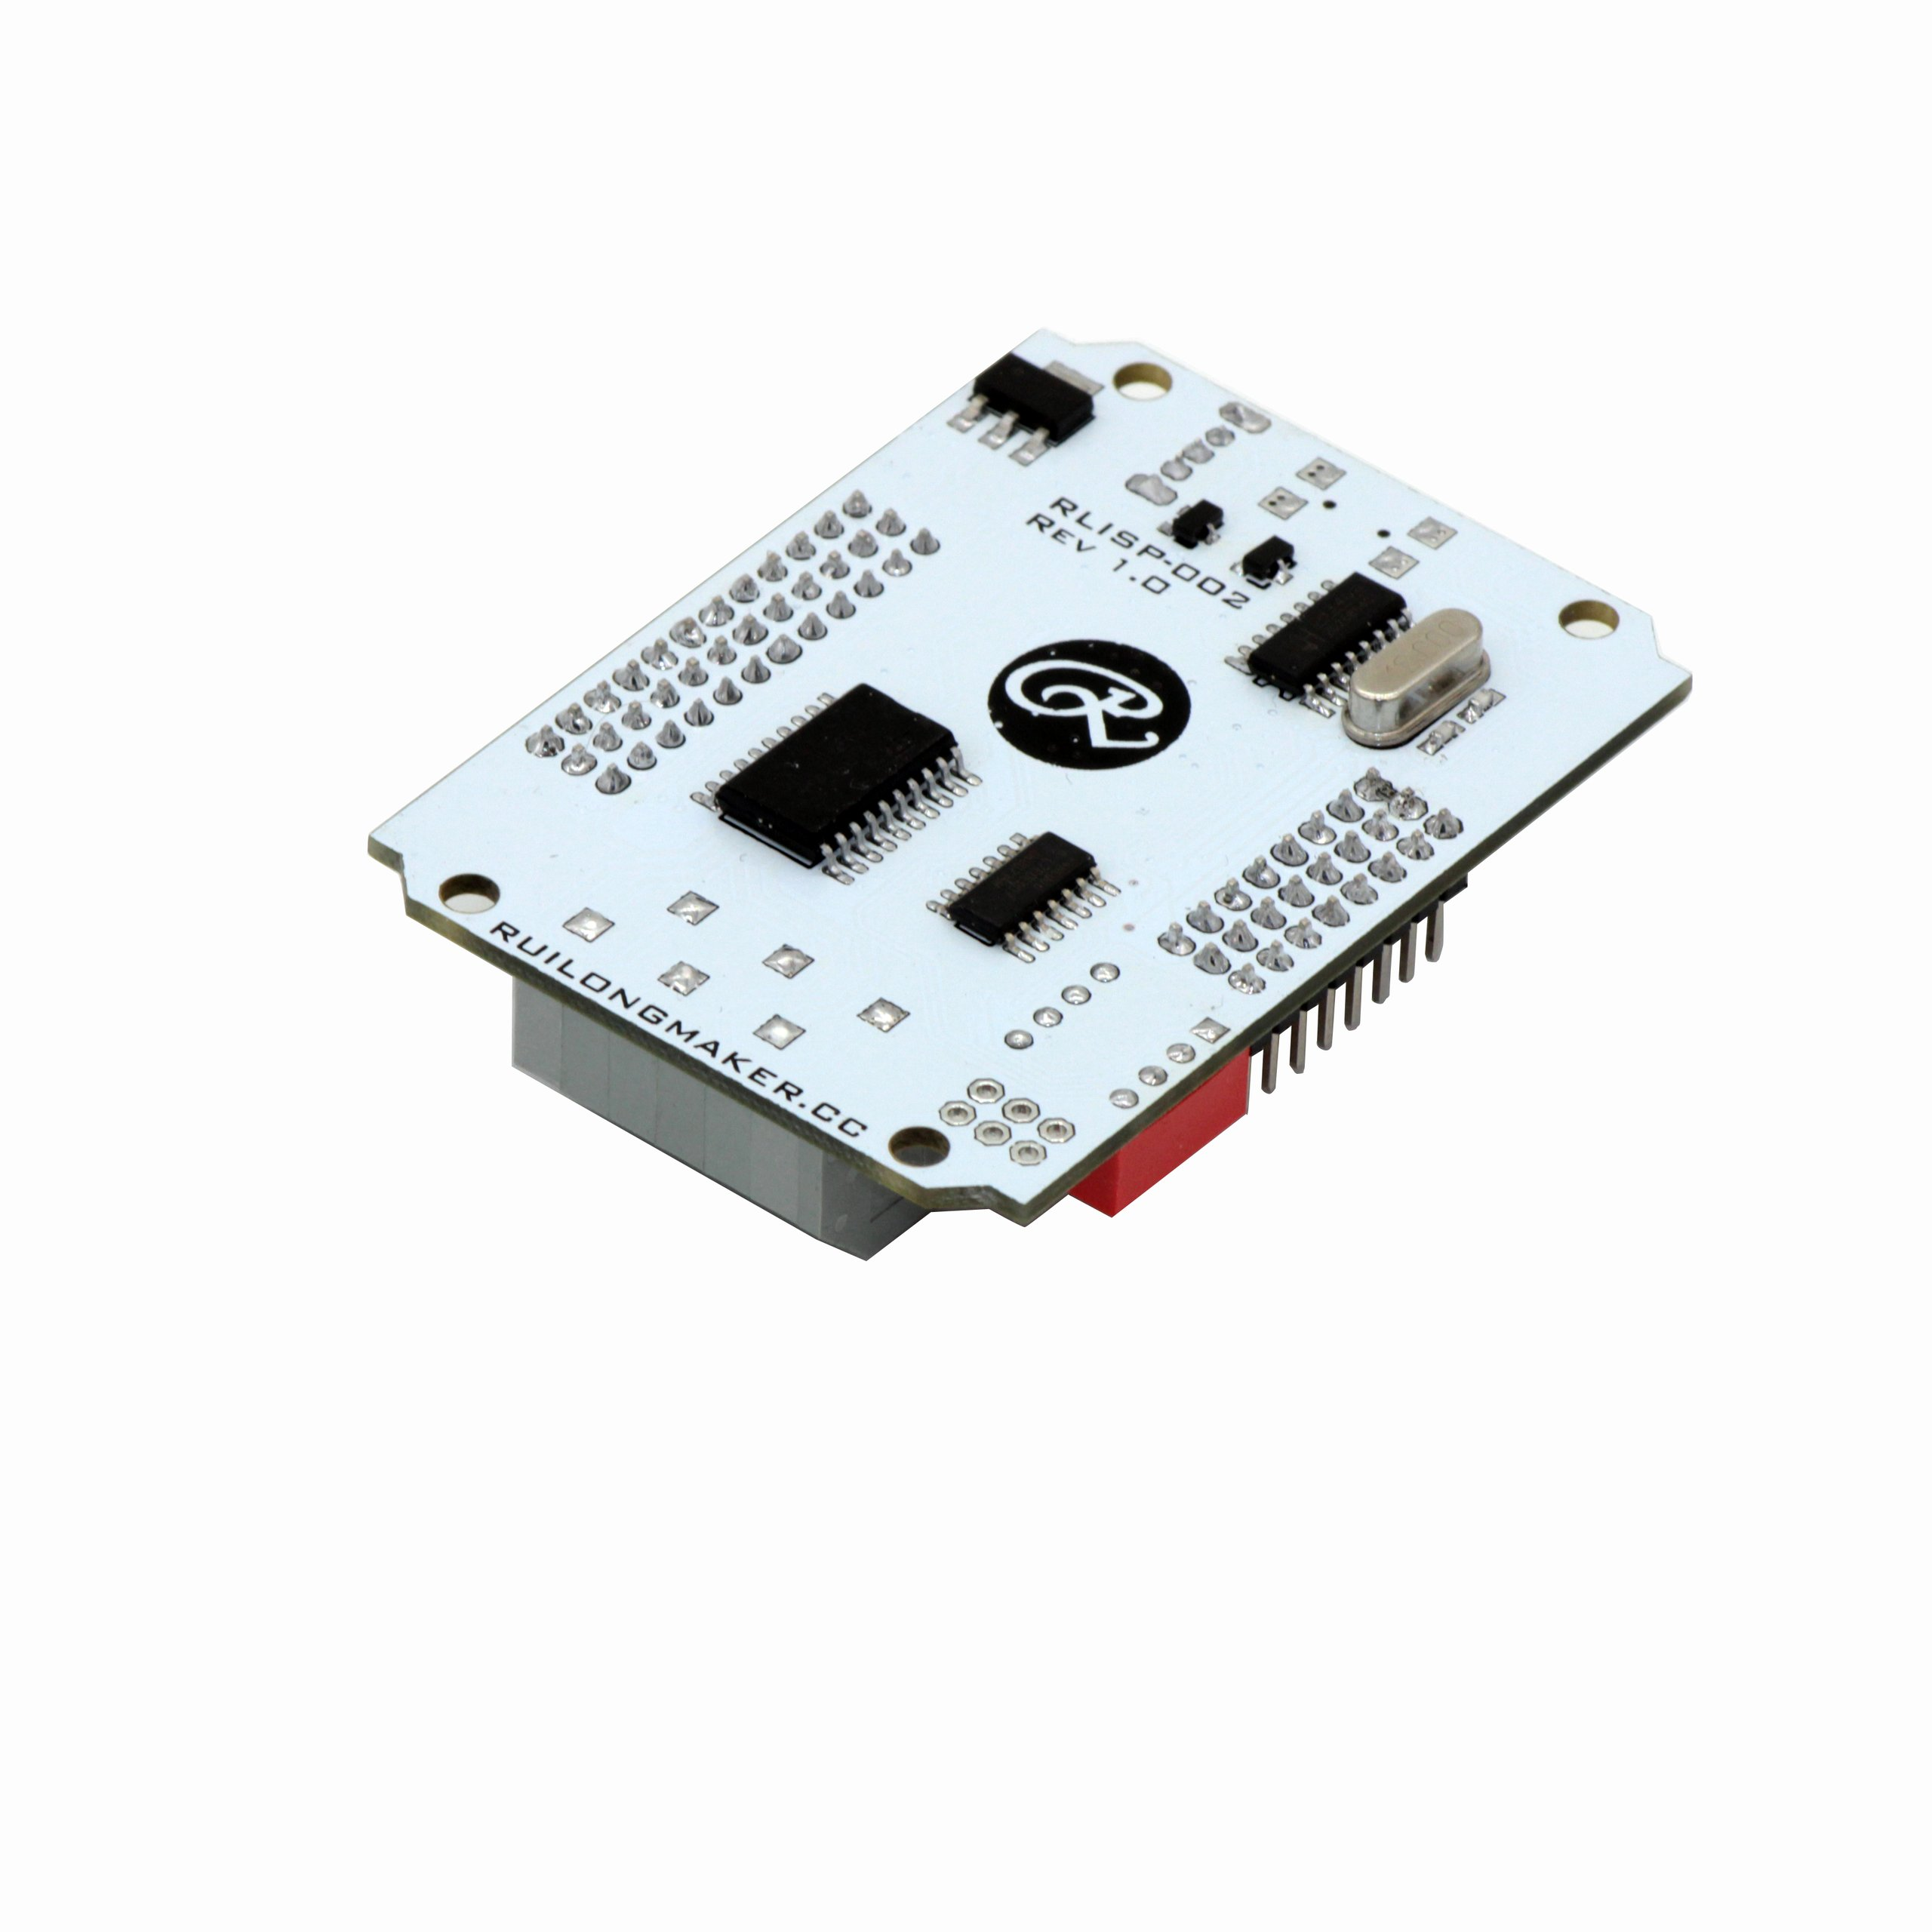 Nano robot controller for arduino from ruilongmaker on tindie